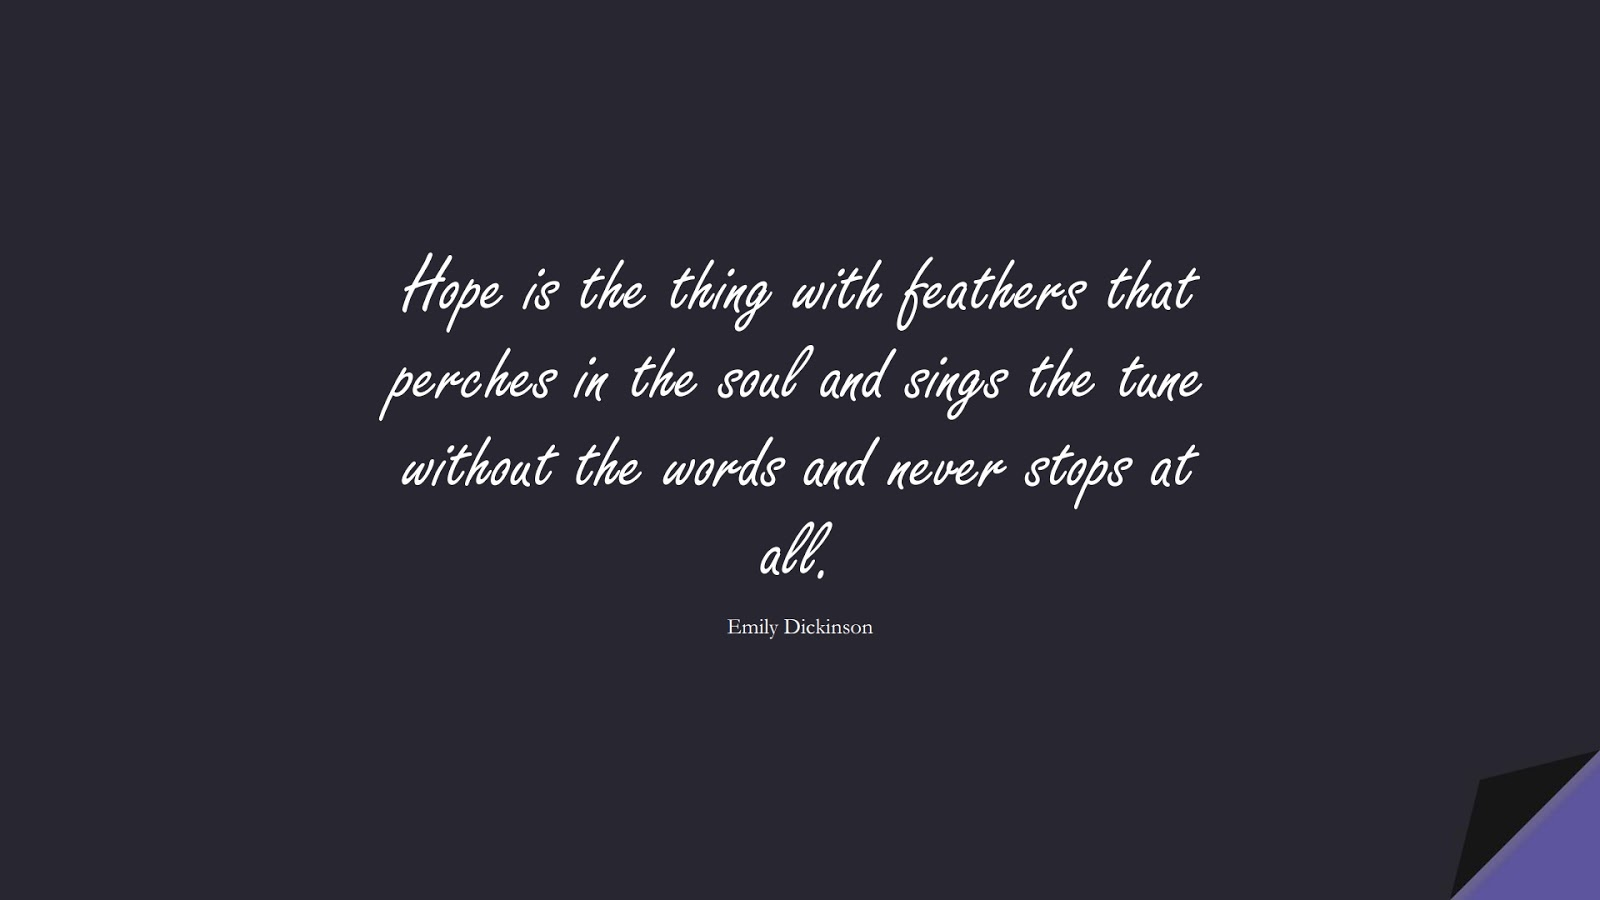 Hope is the thing with feathers that perches in the soul and sings the tune without the words and never stops at all. (Emily Dickinson);  #HopeQuotes